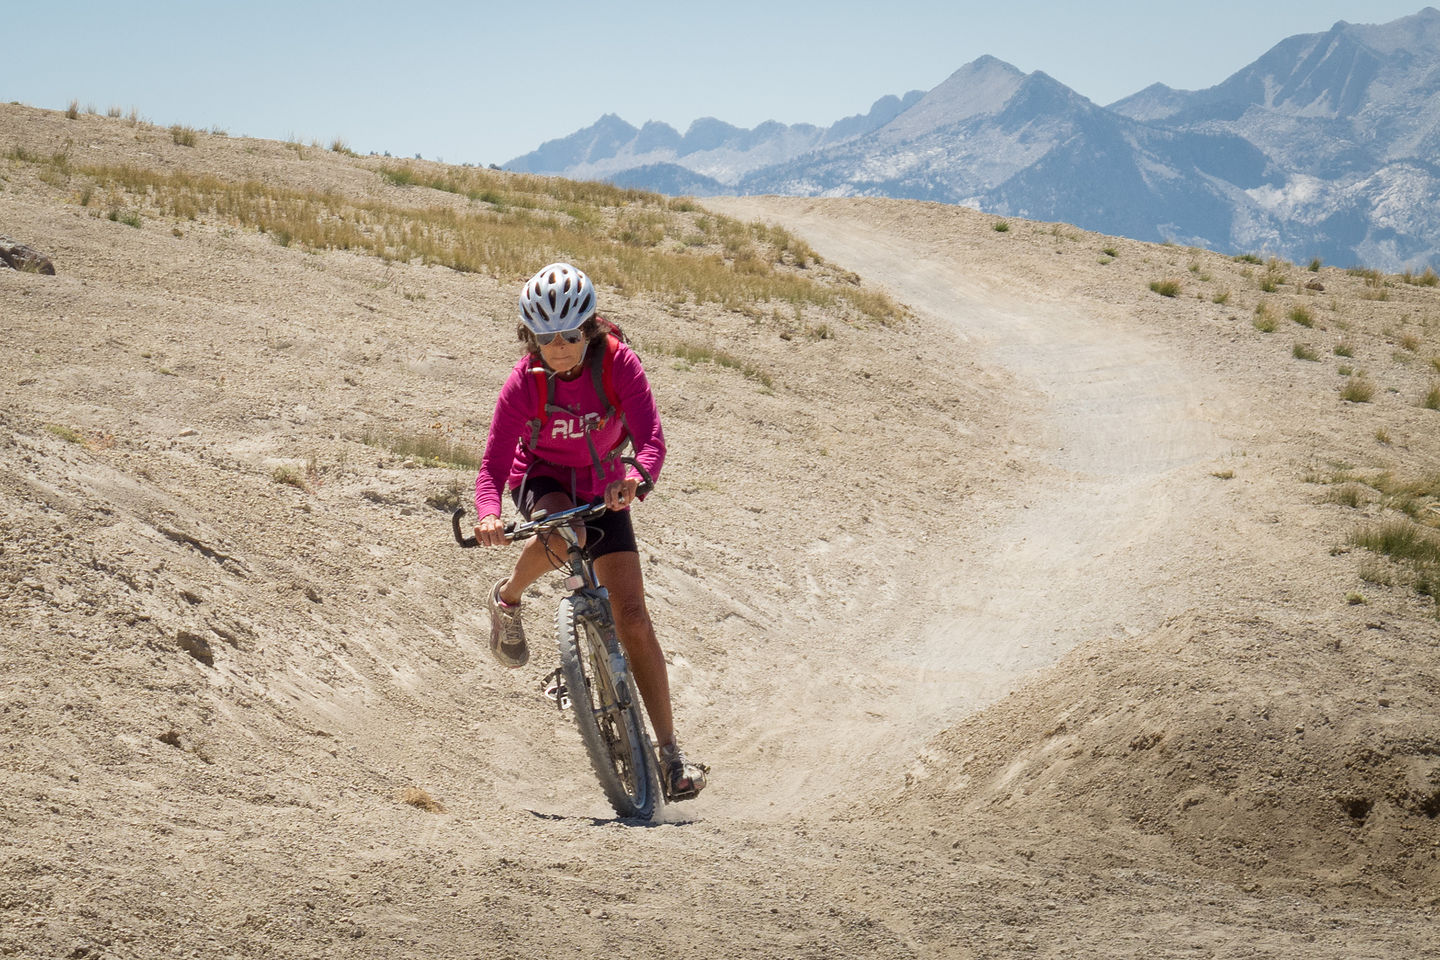 Lolo on Inadequate Hardtail Bike